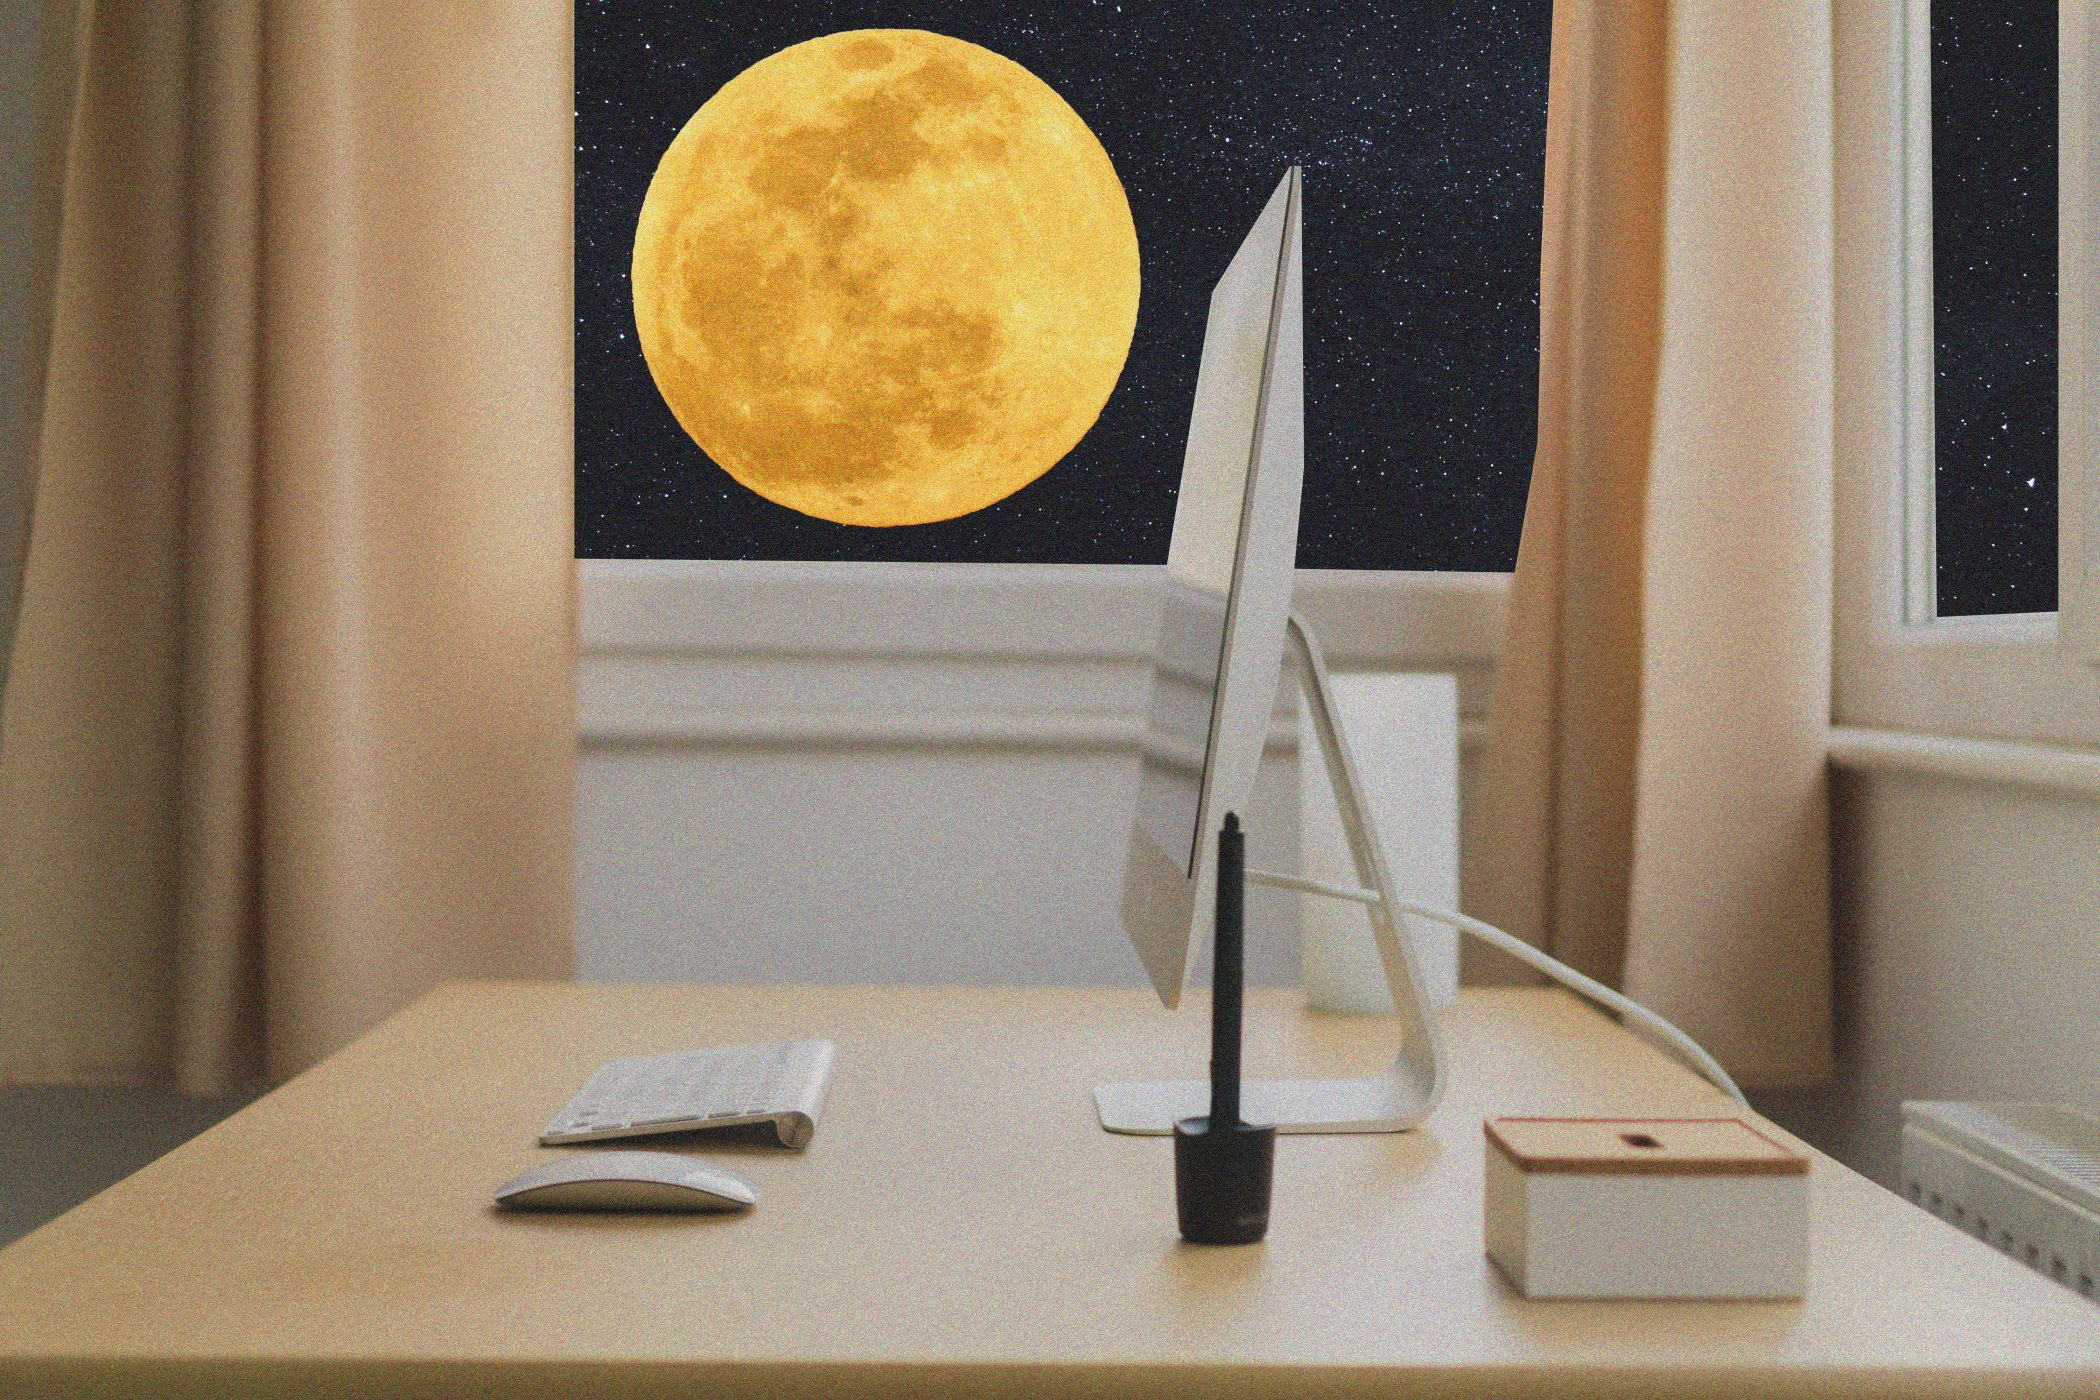 Desk with windows open showing the night sky with yellow full moon in background.